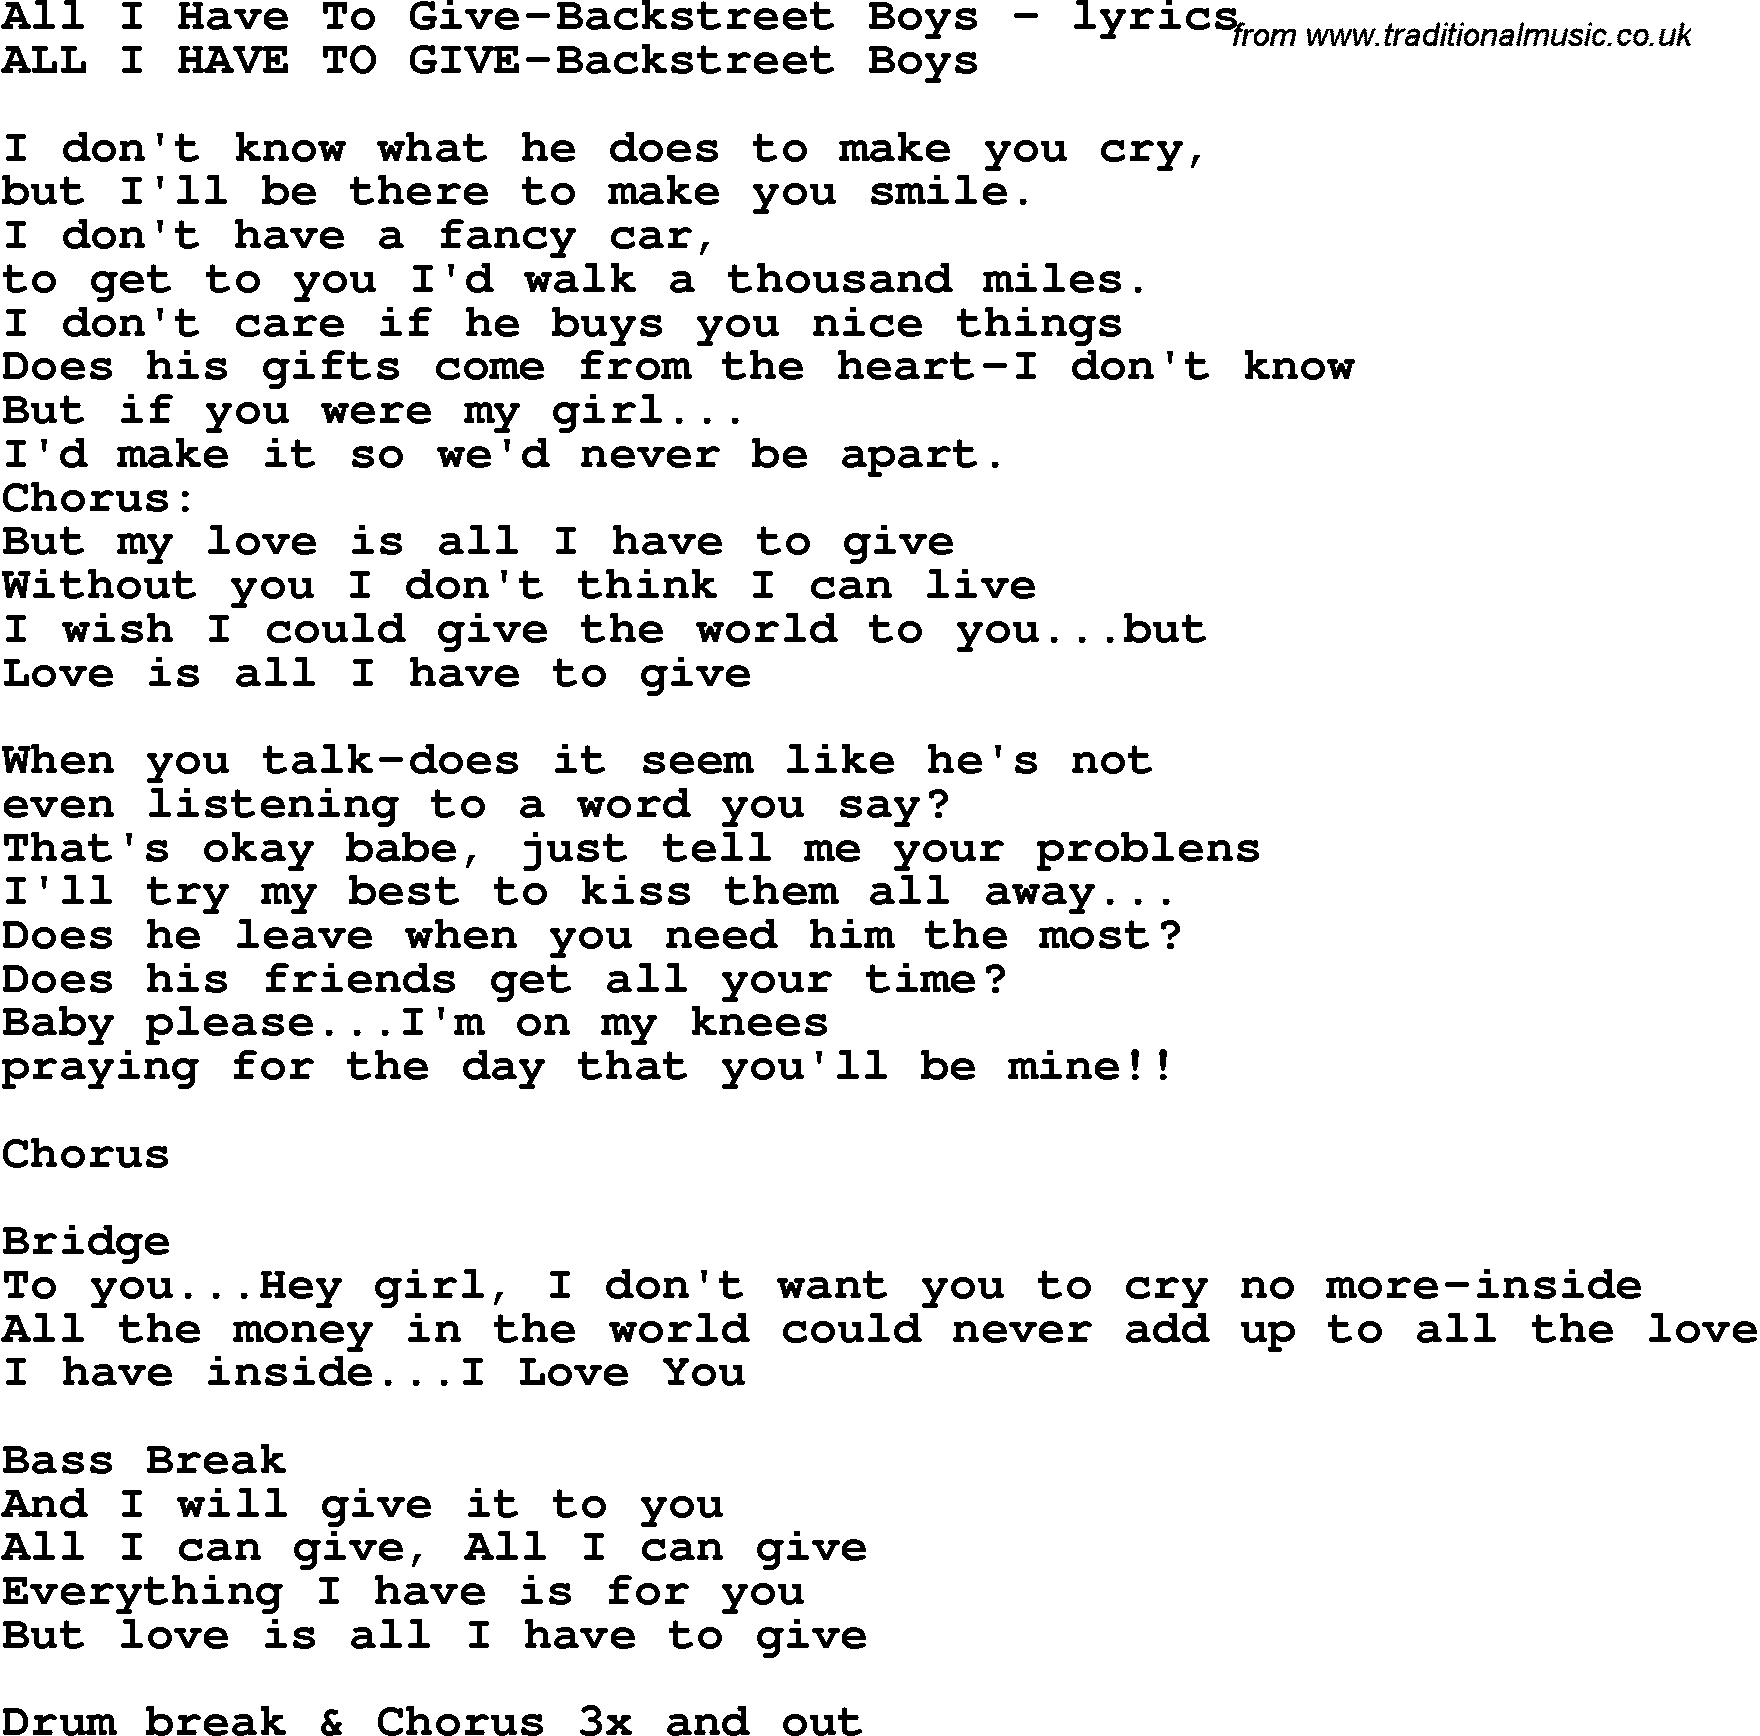 Backstreet Boys- All I have to Give (Lyrics) - YouTube